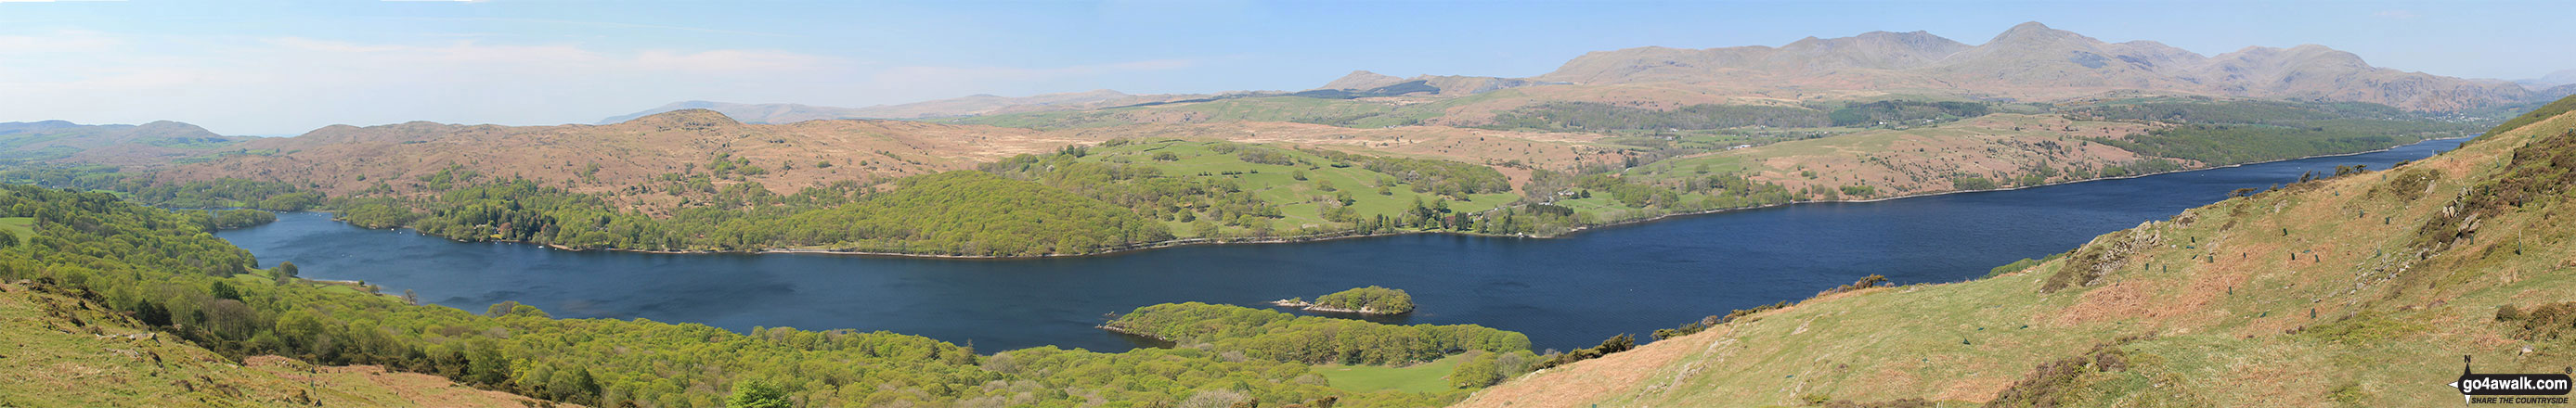 Coniston Water with Beacon (Blawith Fells), Caw (Dunnerdale Fells),  White Maiden, Walna Scar, Dow Crag and The Old Man of Coniston (right) from Great Hill (Consiton)